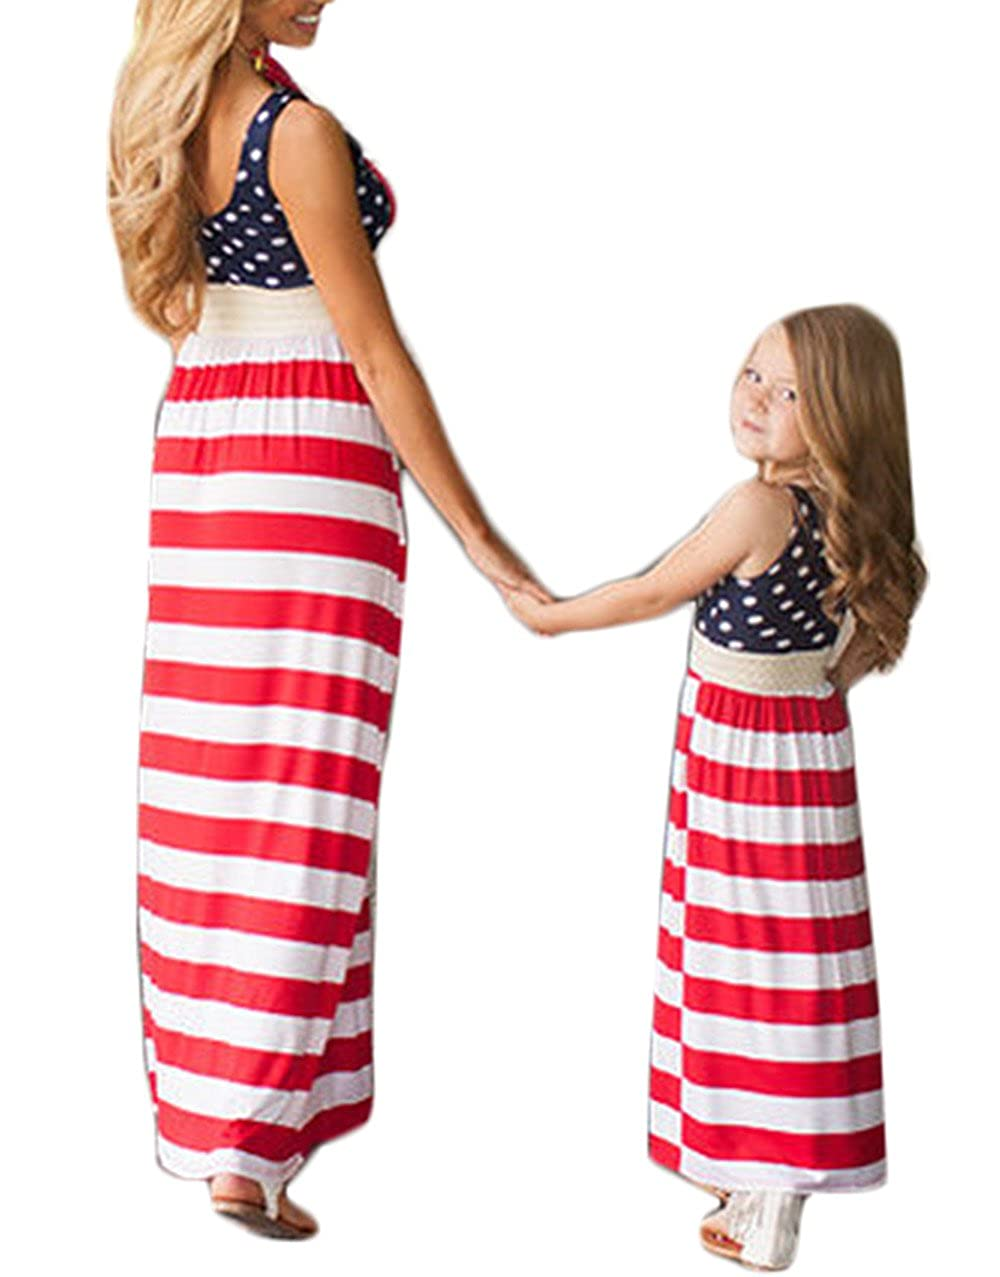 40bb4cecc Mommy and Me Summer Beach Party Maxi Dress Family Look ClothesPackage  Including:1*Family Matching Fashion Stripe Stitching Beach Boho  SundressClothing ...